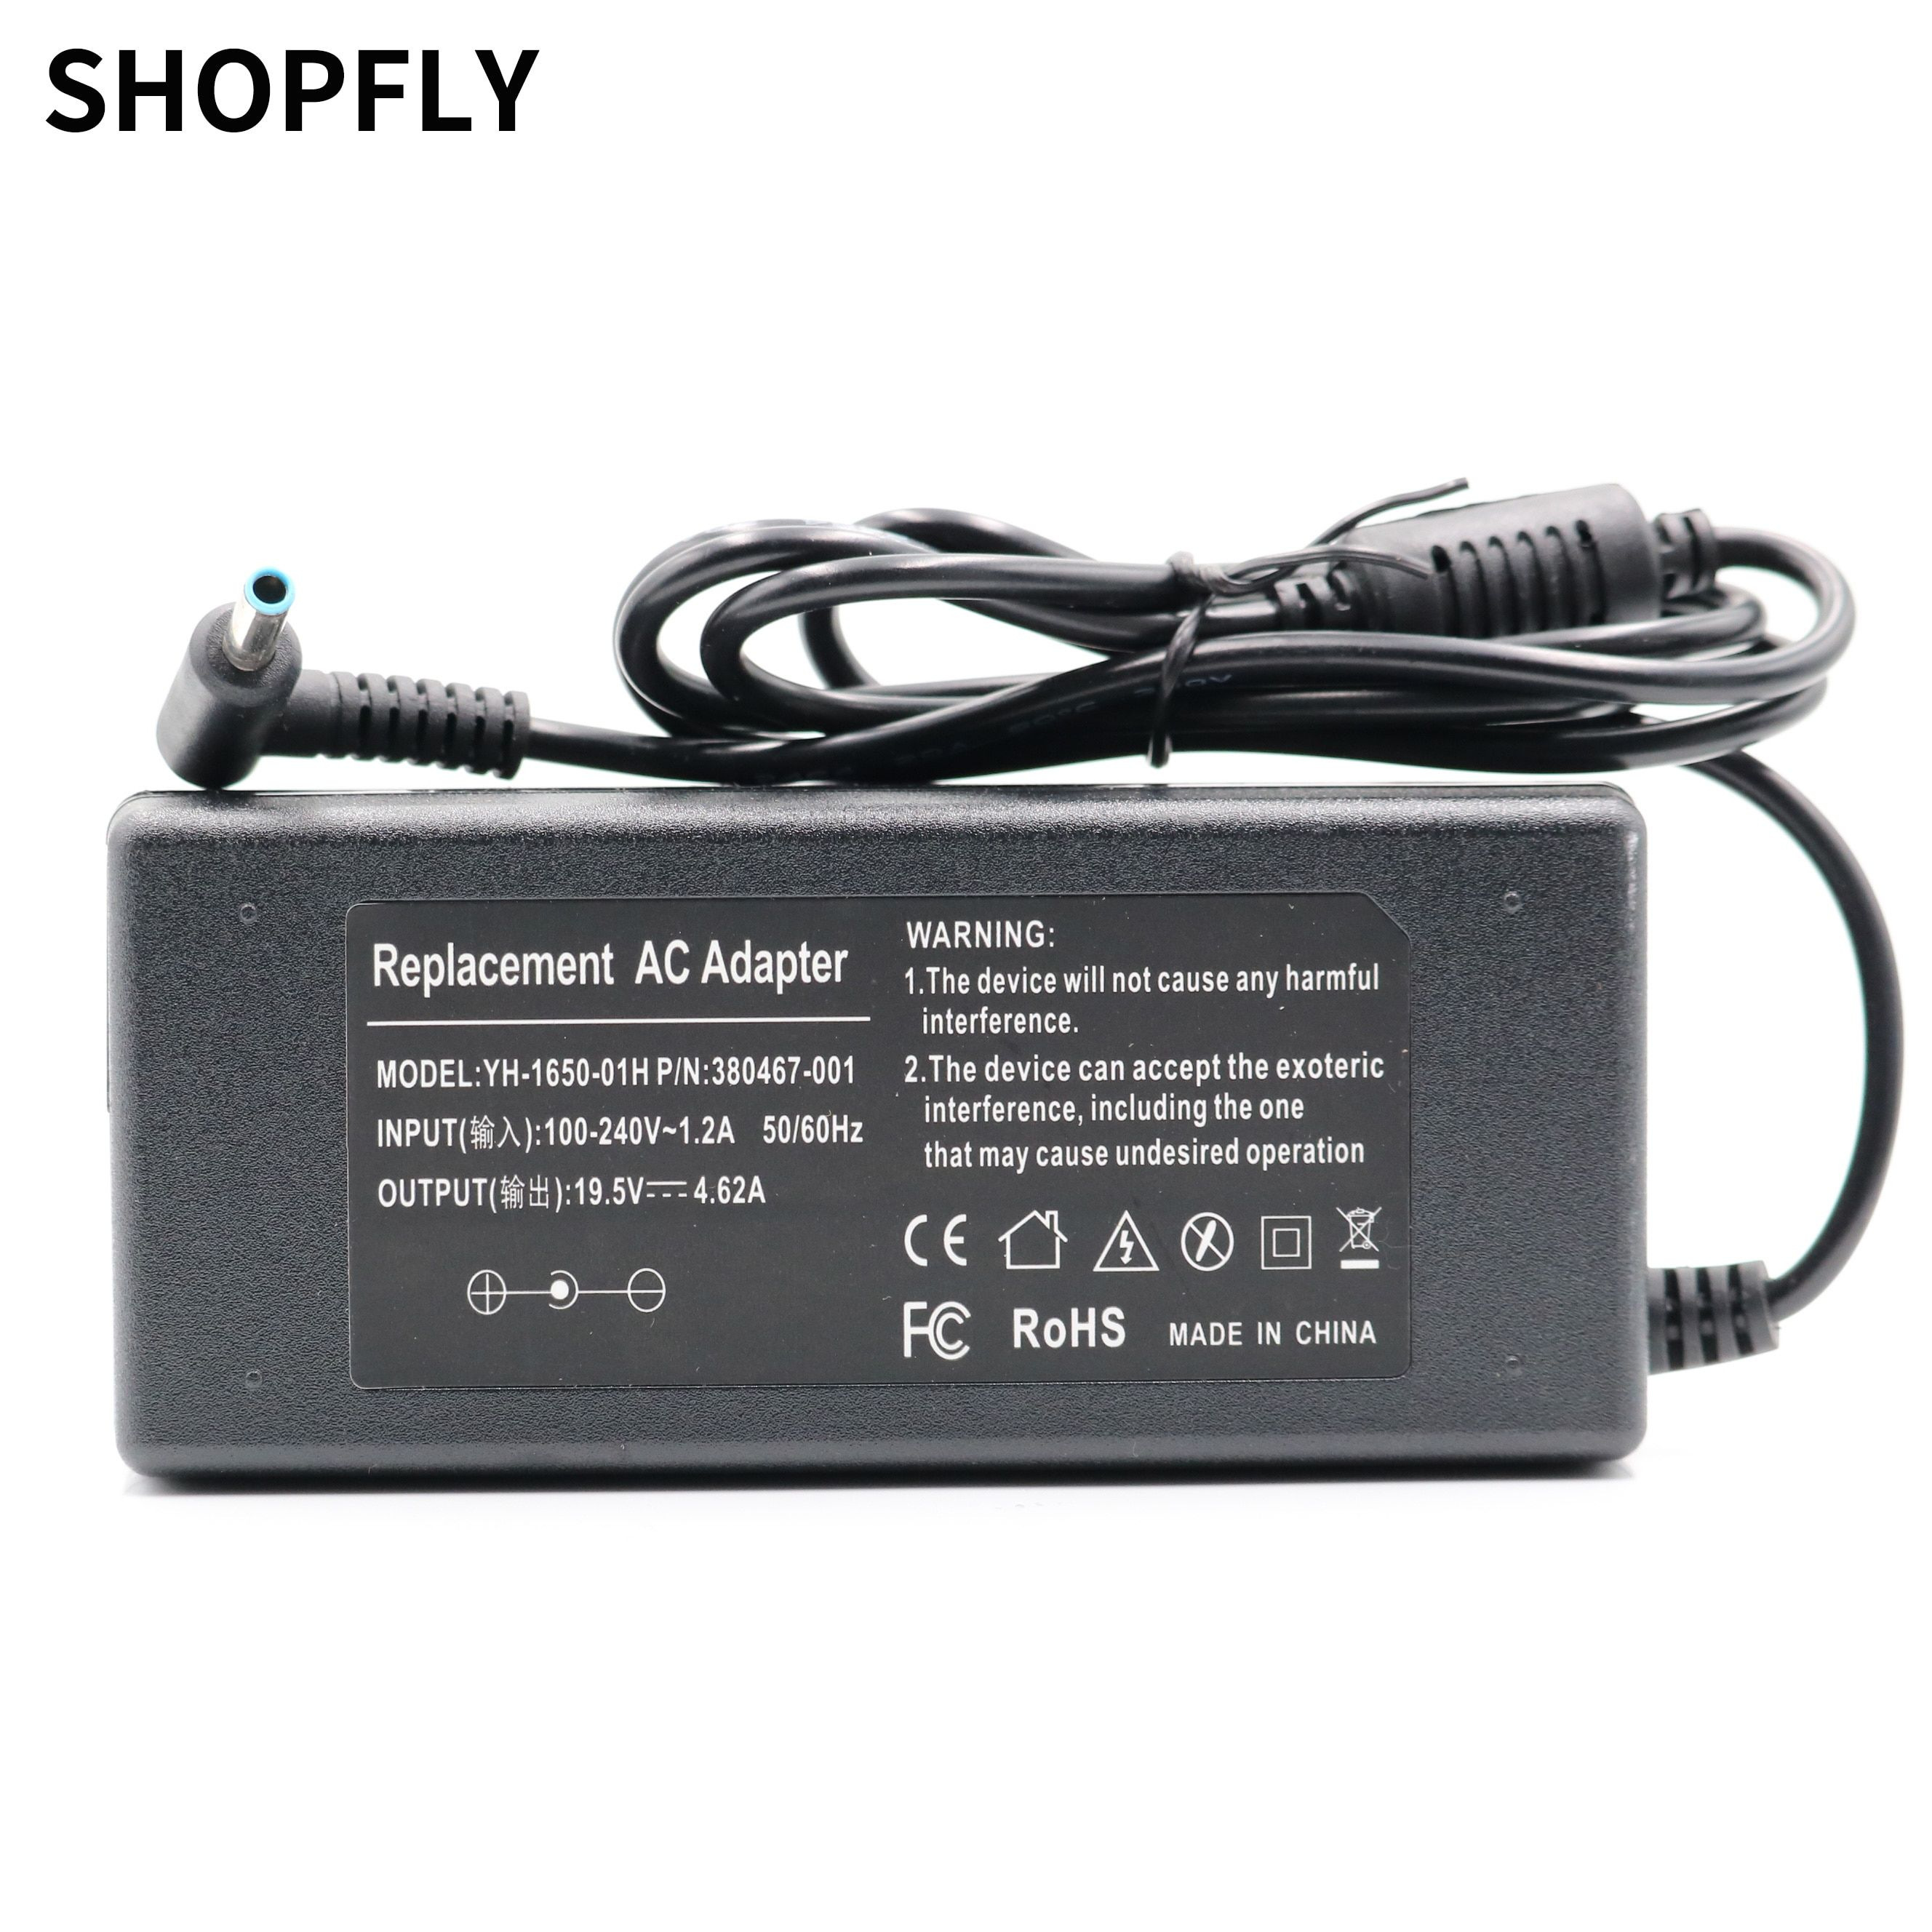 19 5v 4 62a 90w 4 5 3 0mm Ac Laptop Charger Power Adapter For Hp Ppp012c S 710413 001 Envy 17 J000 Charger Notebook Laptop Charger Laptop Adapter Laptop Store